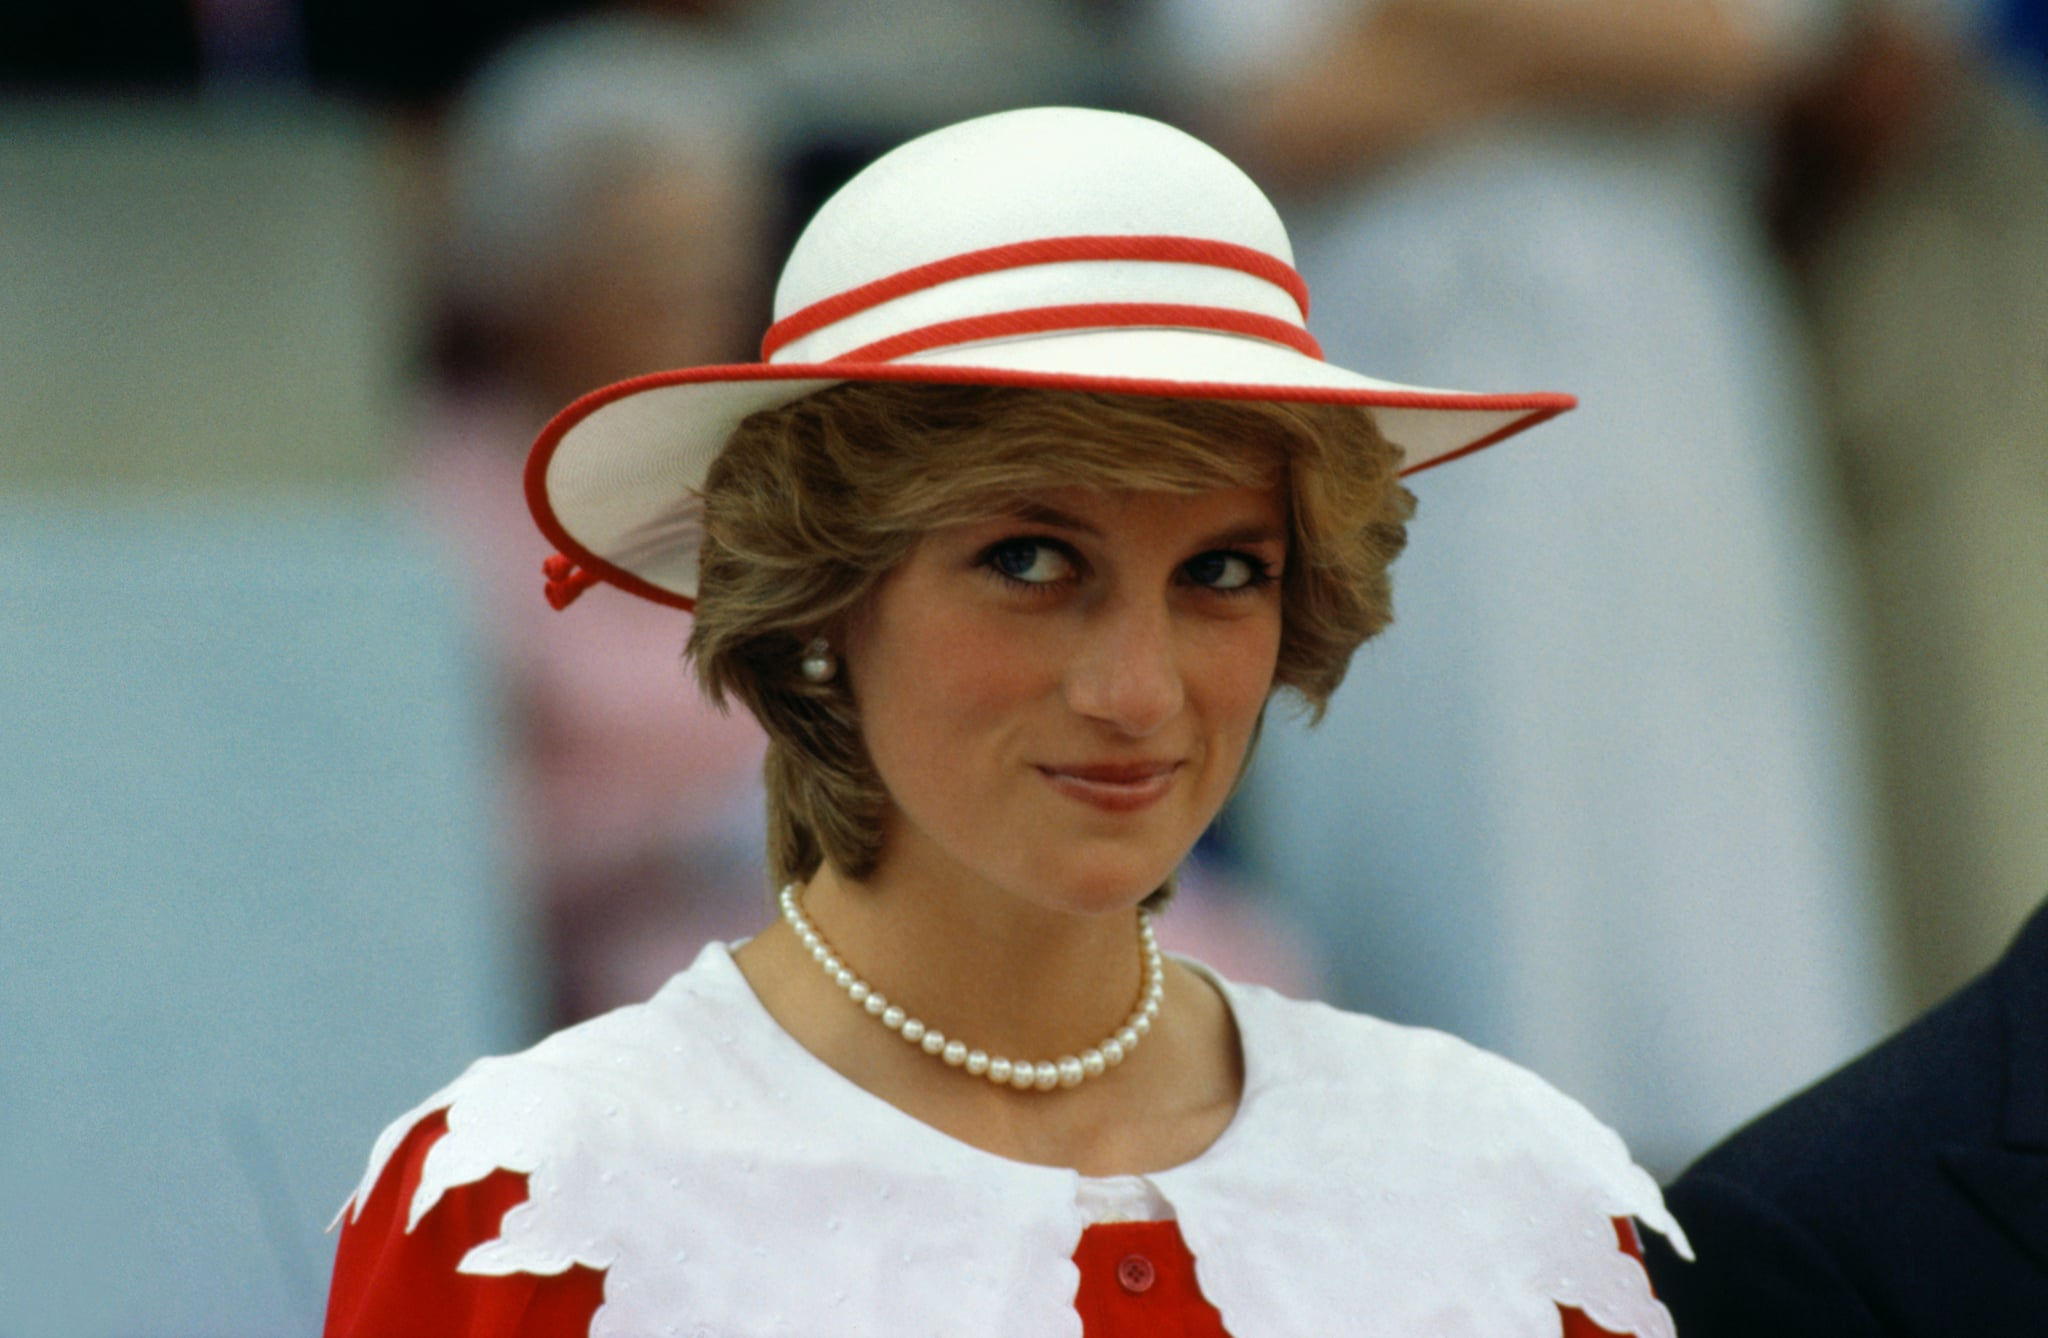 Did Princess Diana Have a Job Before Becoming a Royal? | POPSUGAR Celebrity UK